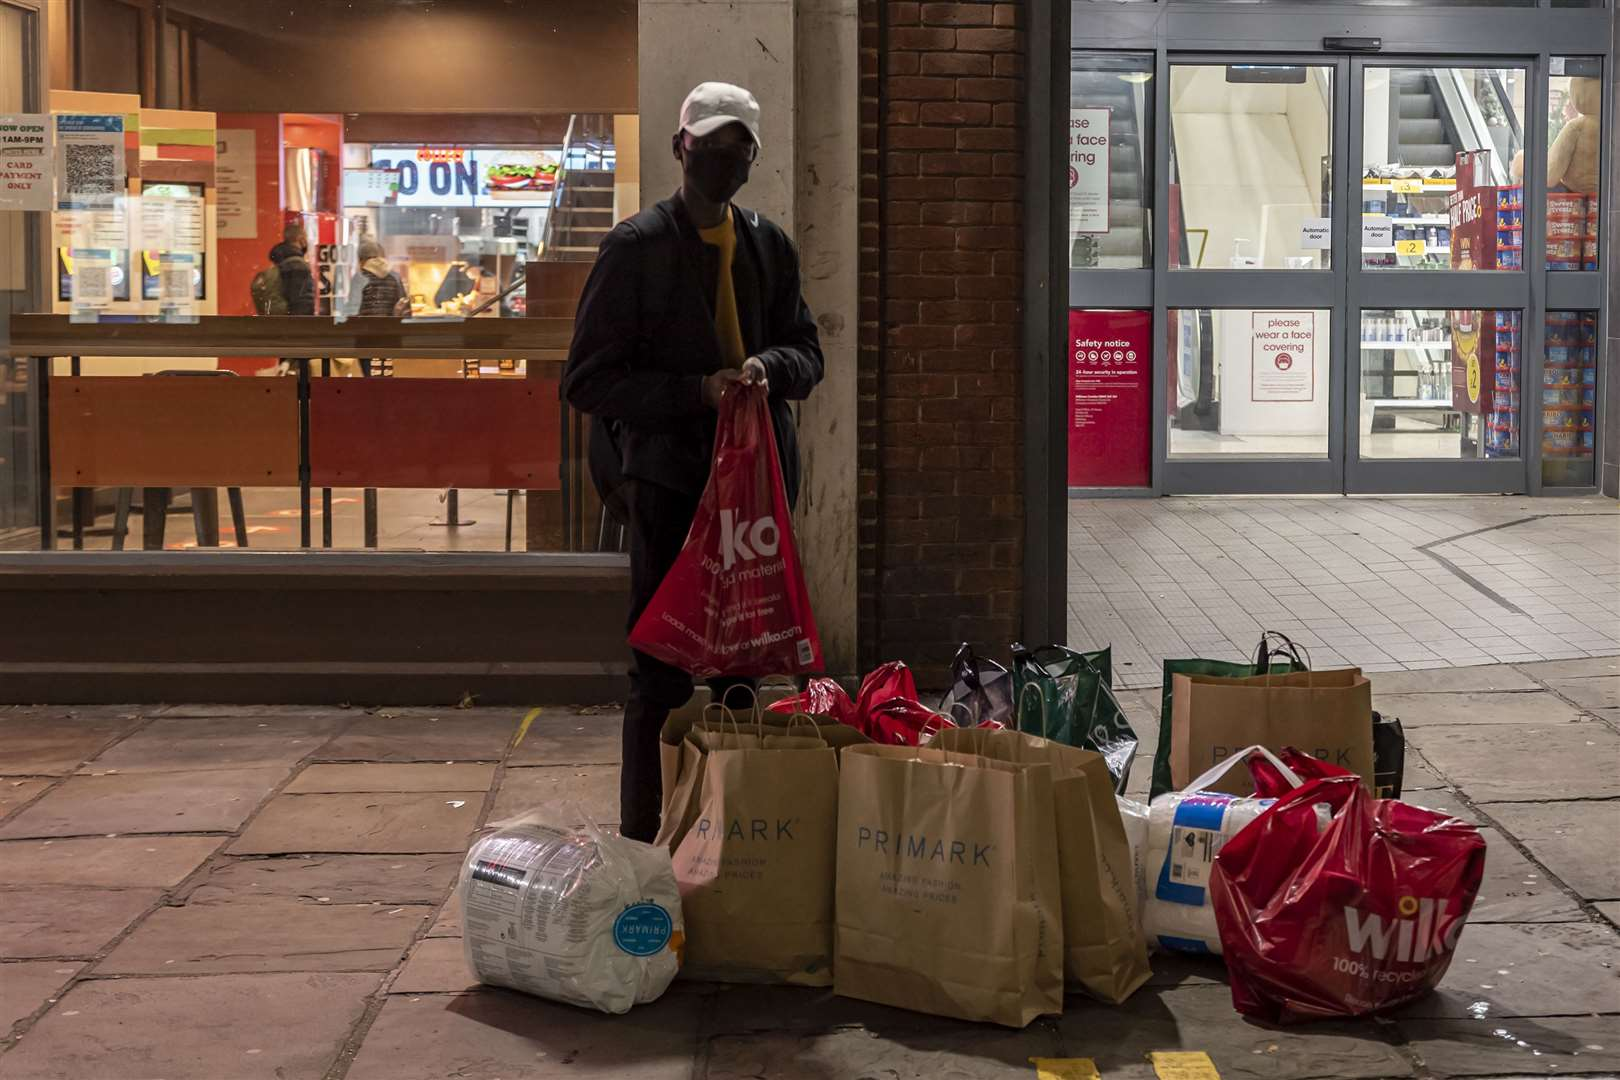 A busy shopper in Canterbury on Wednesday night. Pictures: Jo Court